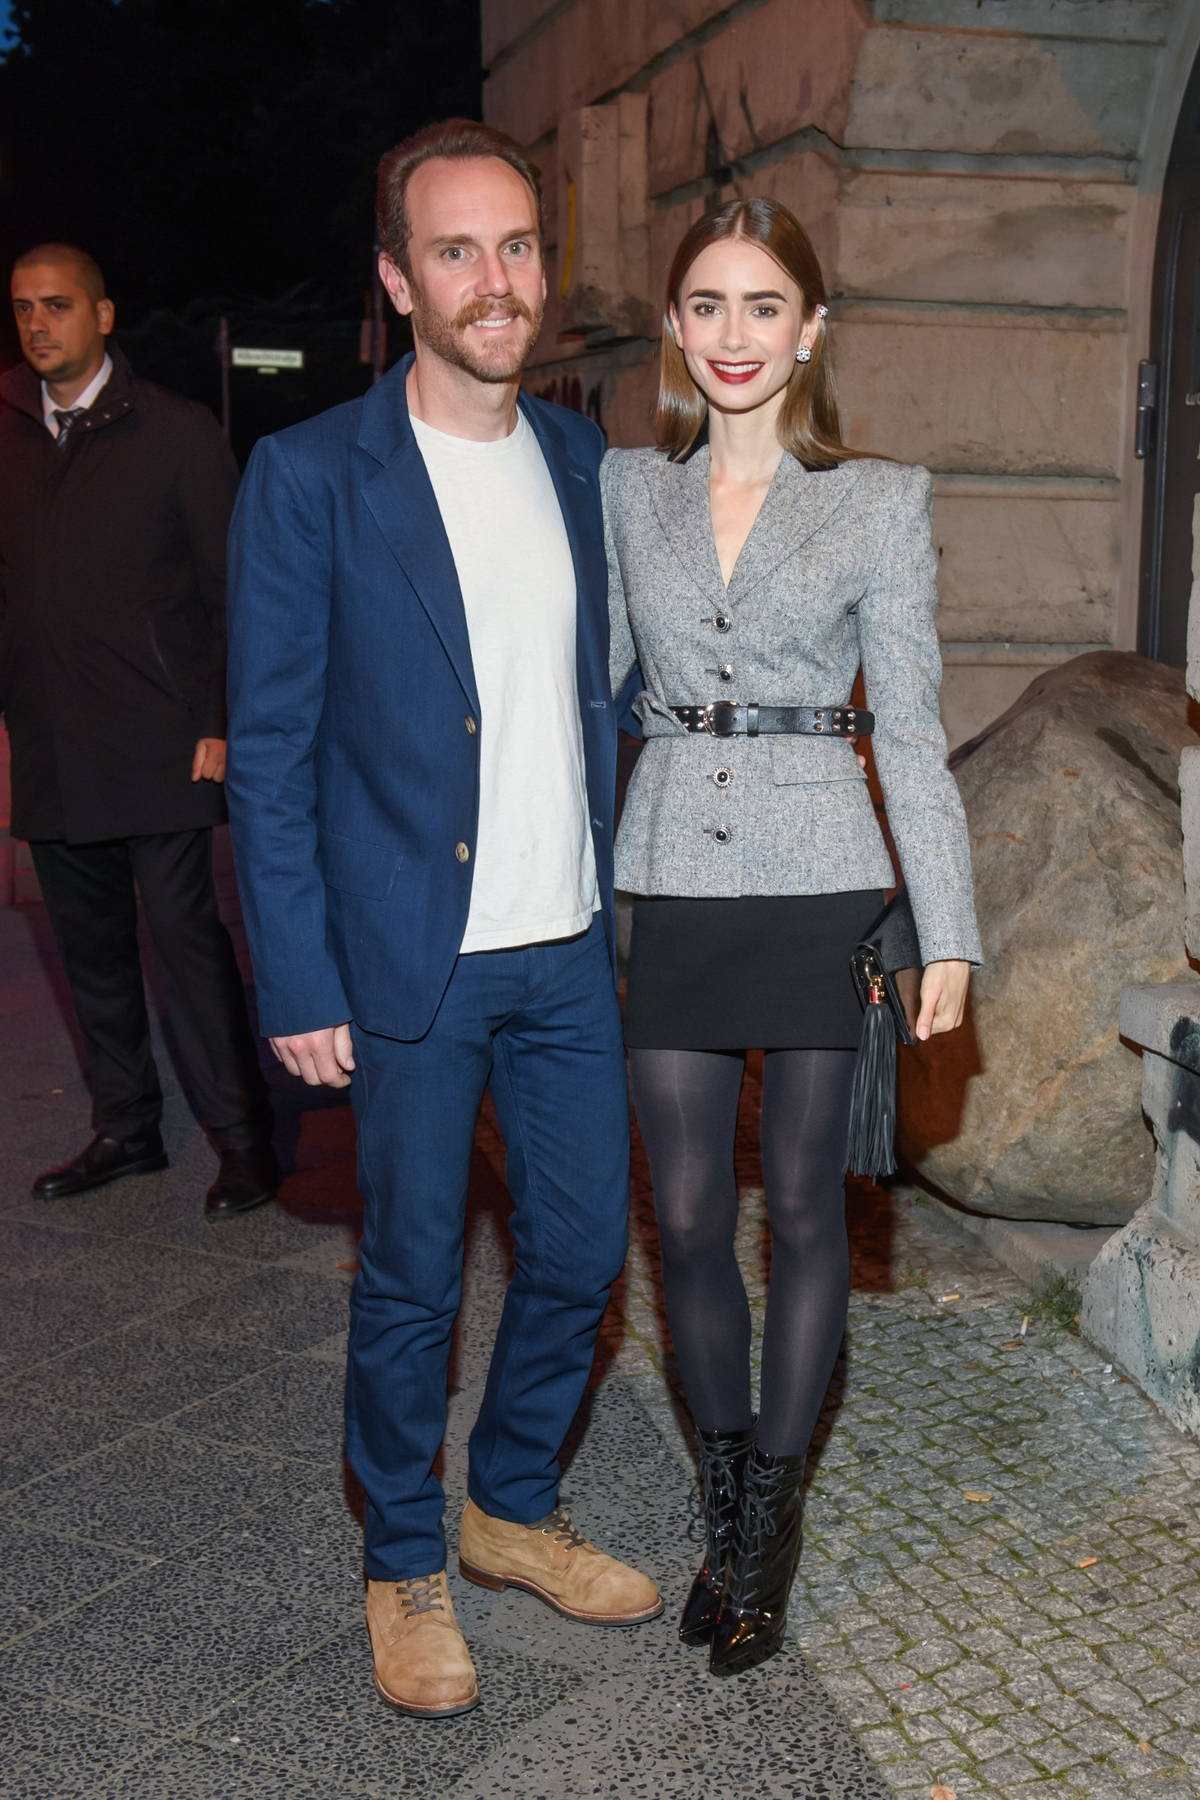 Lily Collins and Chalie McDowell attend the Cartier Clash dinner in Berlin, Germany